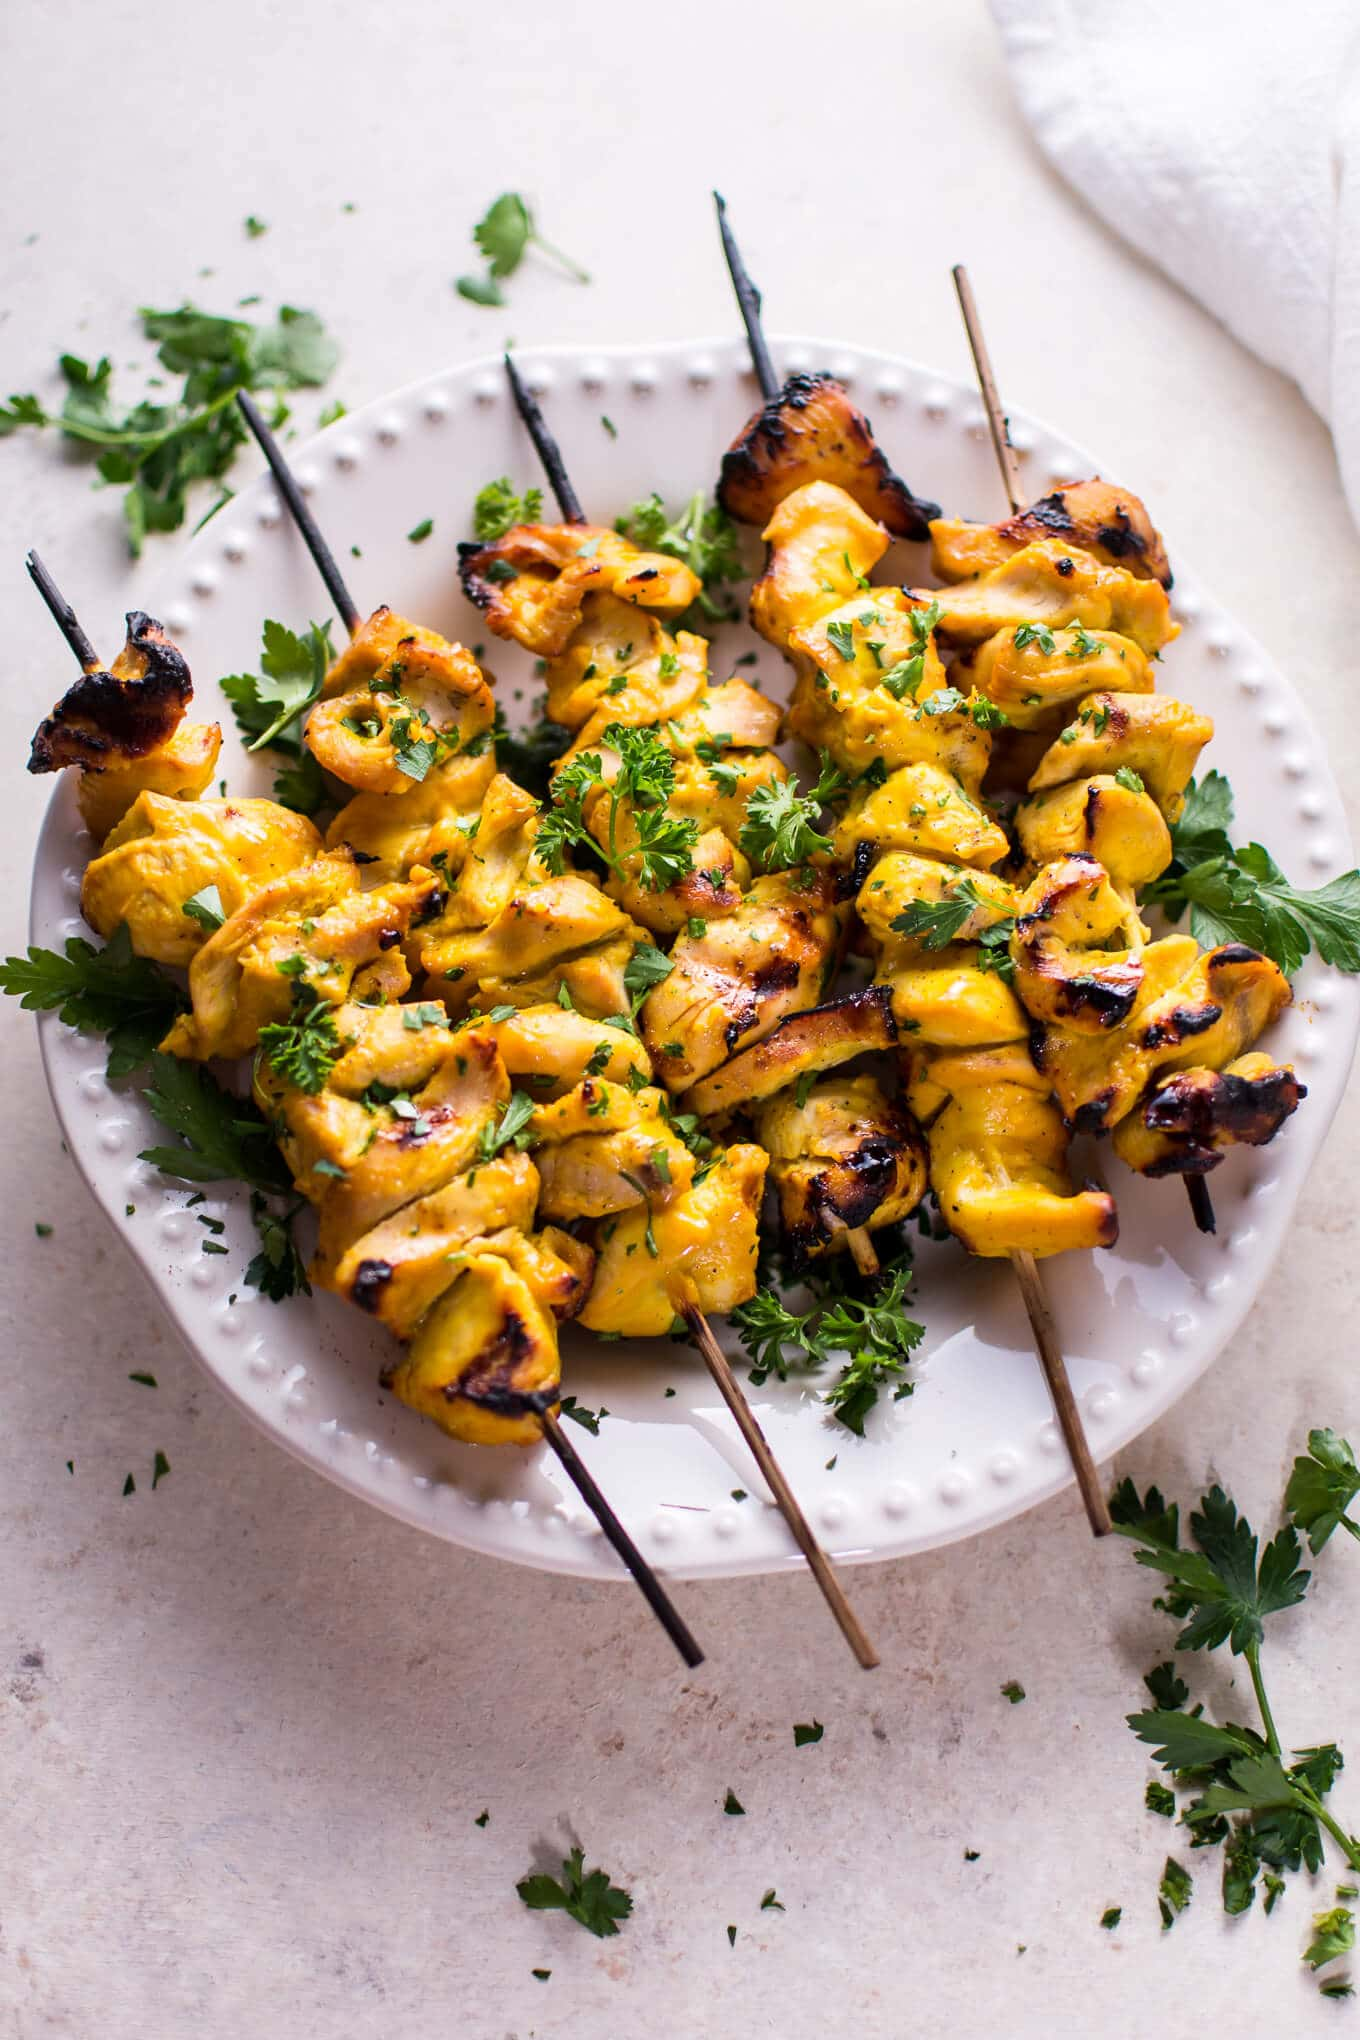 These grilled honey mustard chicken skewers are sure to become a family BBQ favorite this summer! The 3-ingredient marinade is super easy and tastes amazing.